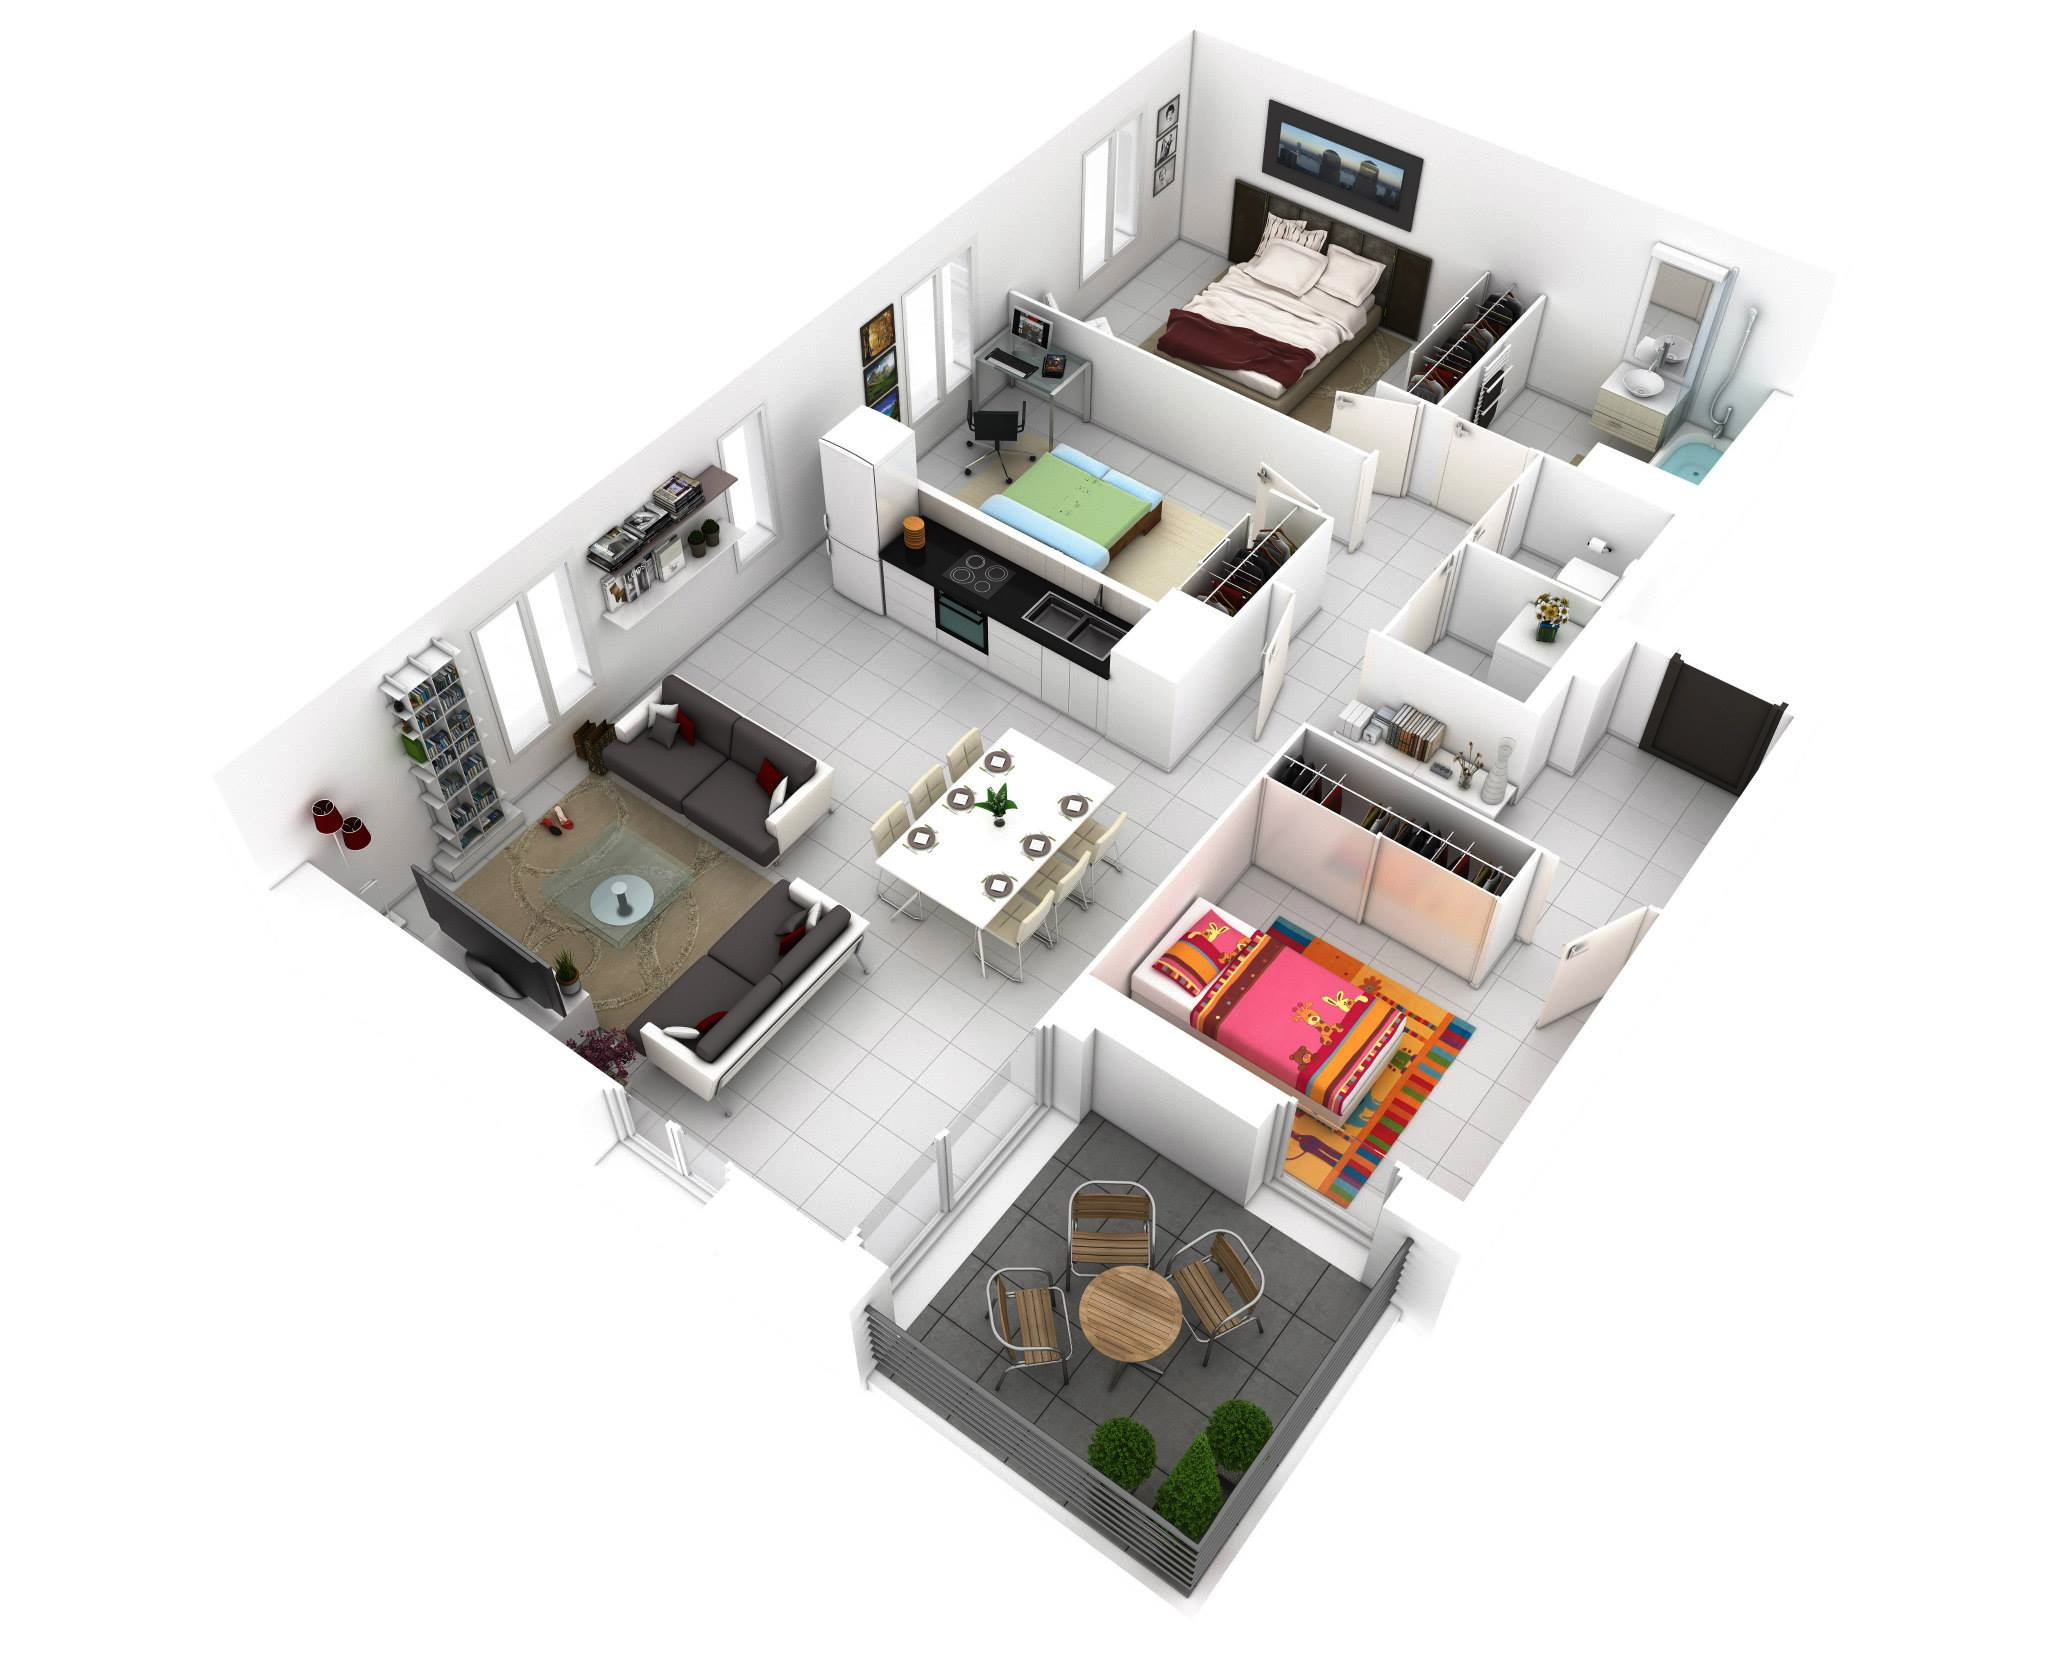 More Bedroom D Floor Plans - 3 bedroom house design in philippines